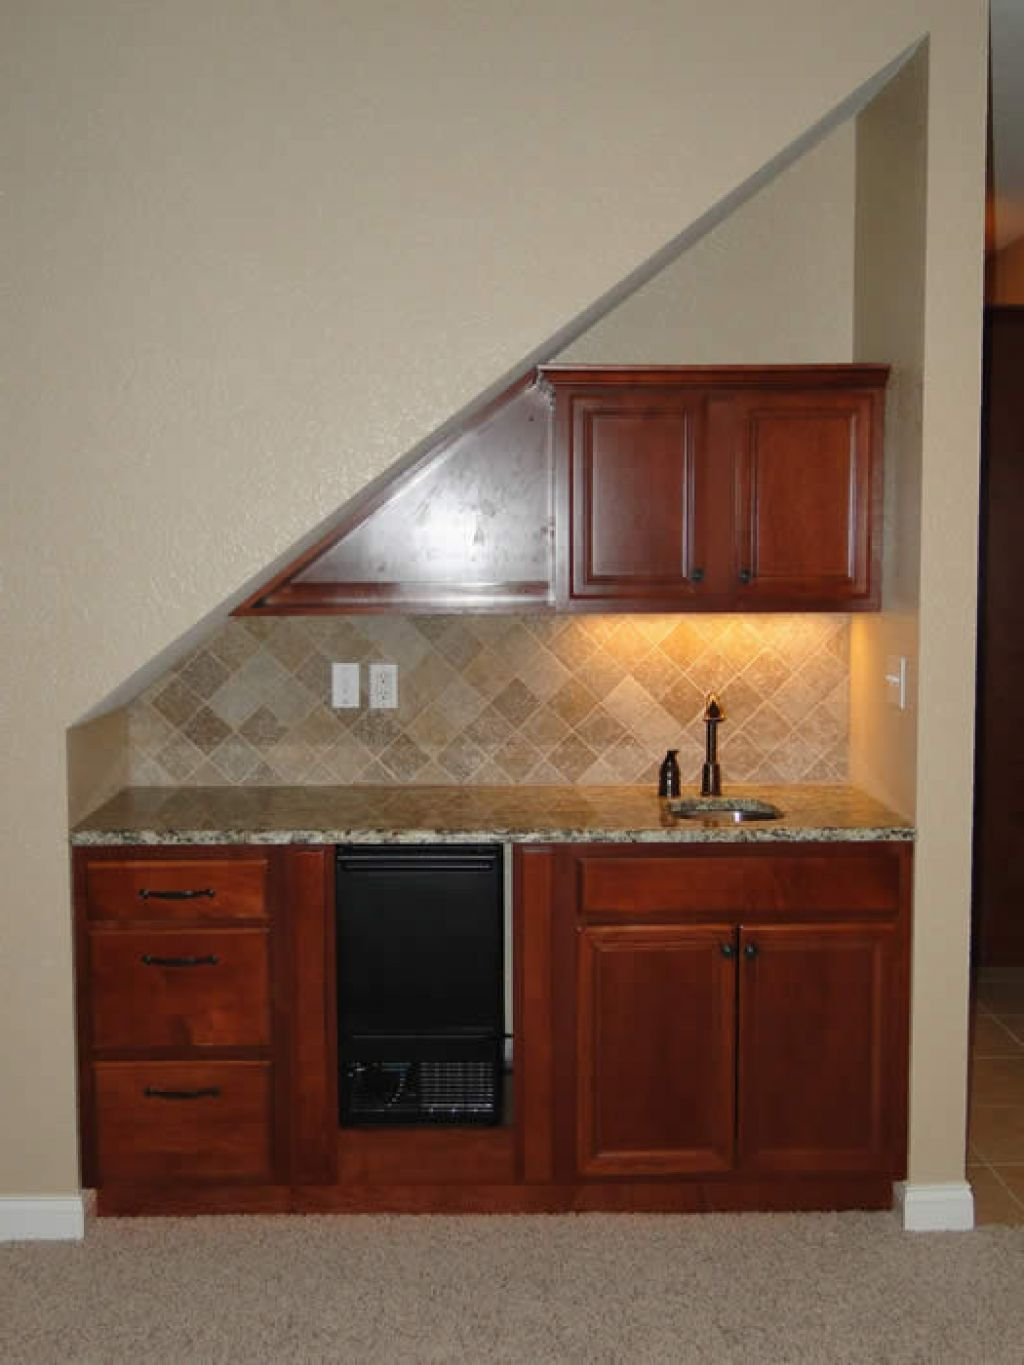 Wet Bar Under Stairs Design Ideas Pictures Remodel and Decor